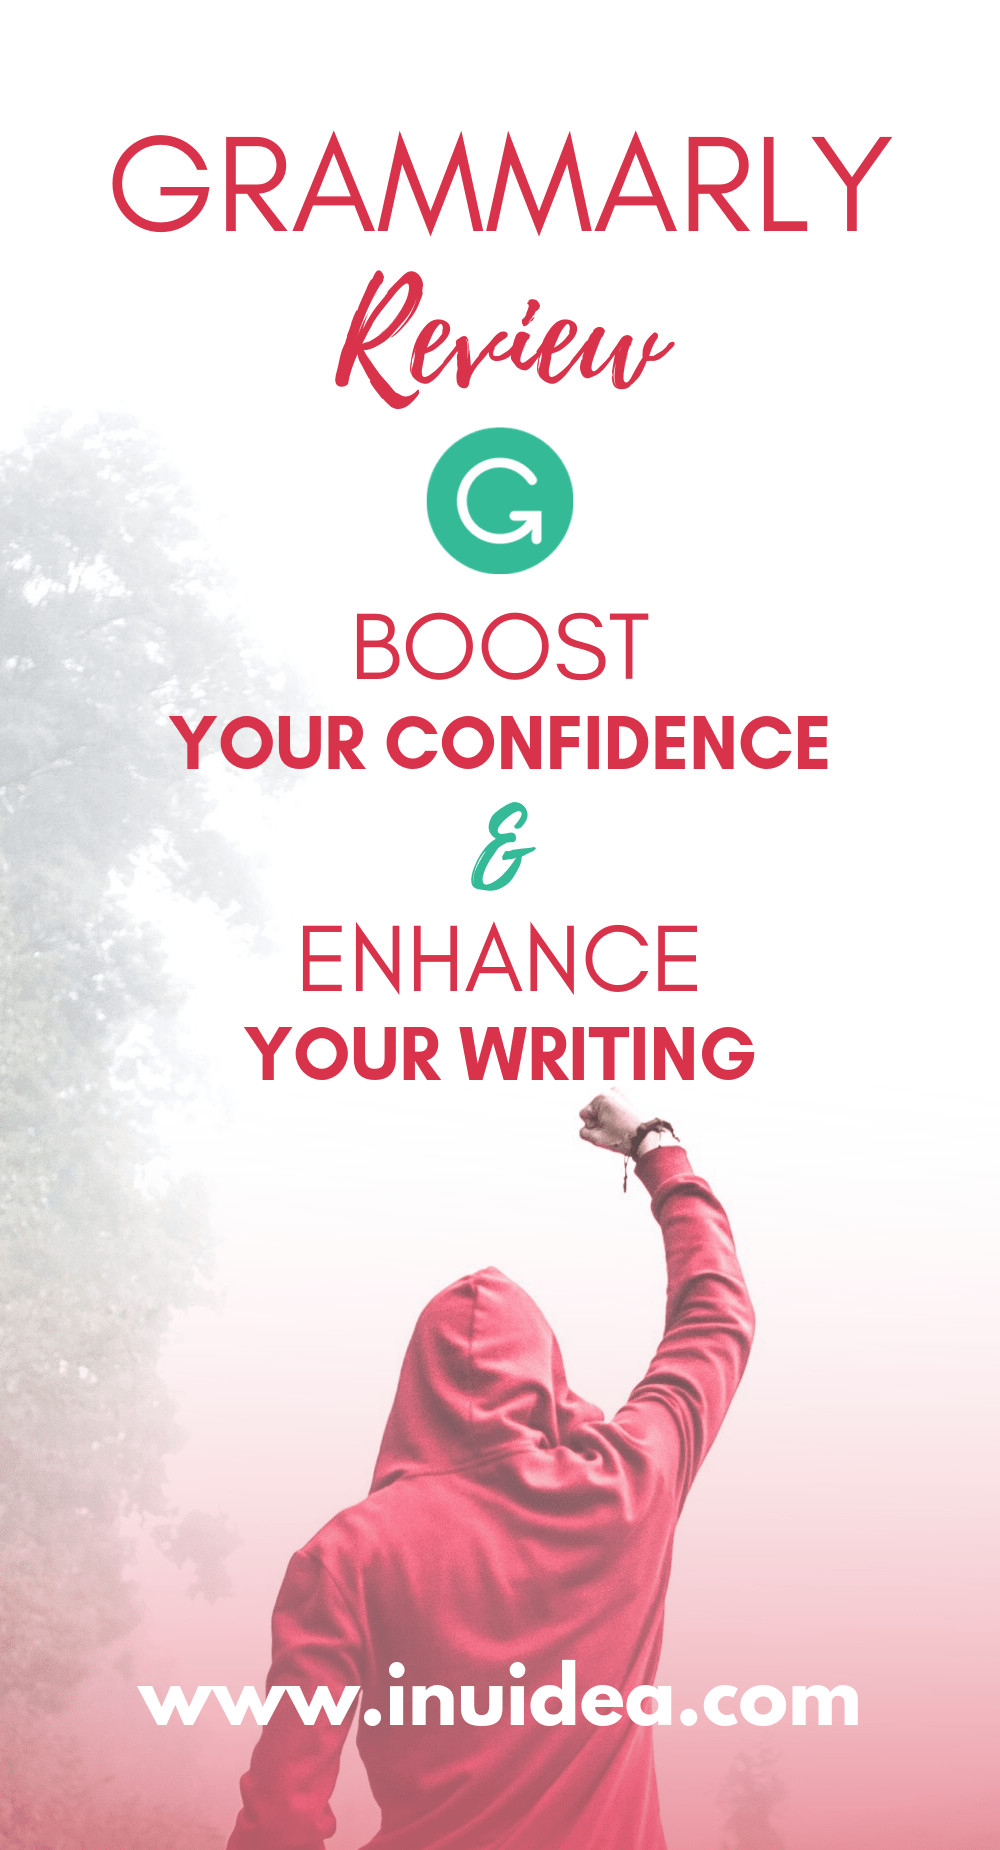 Low Price Grammarly Proofreading Software